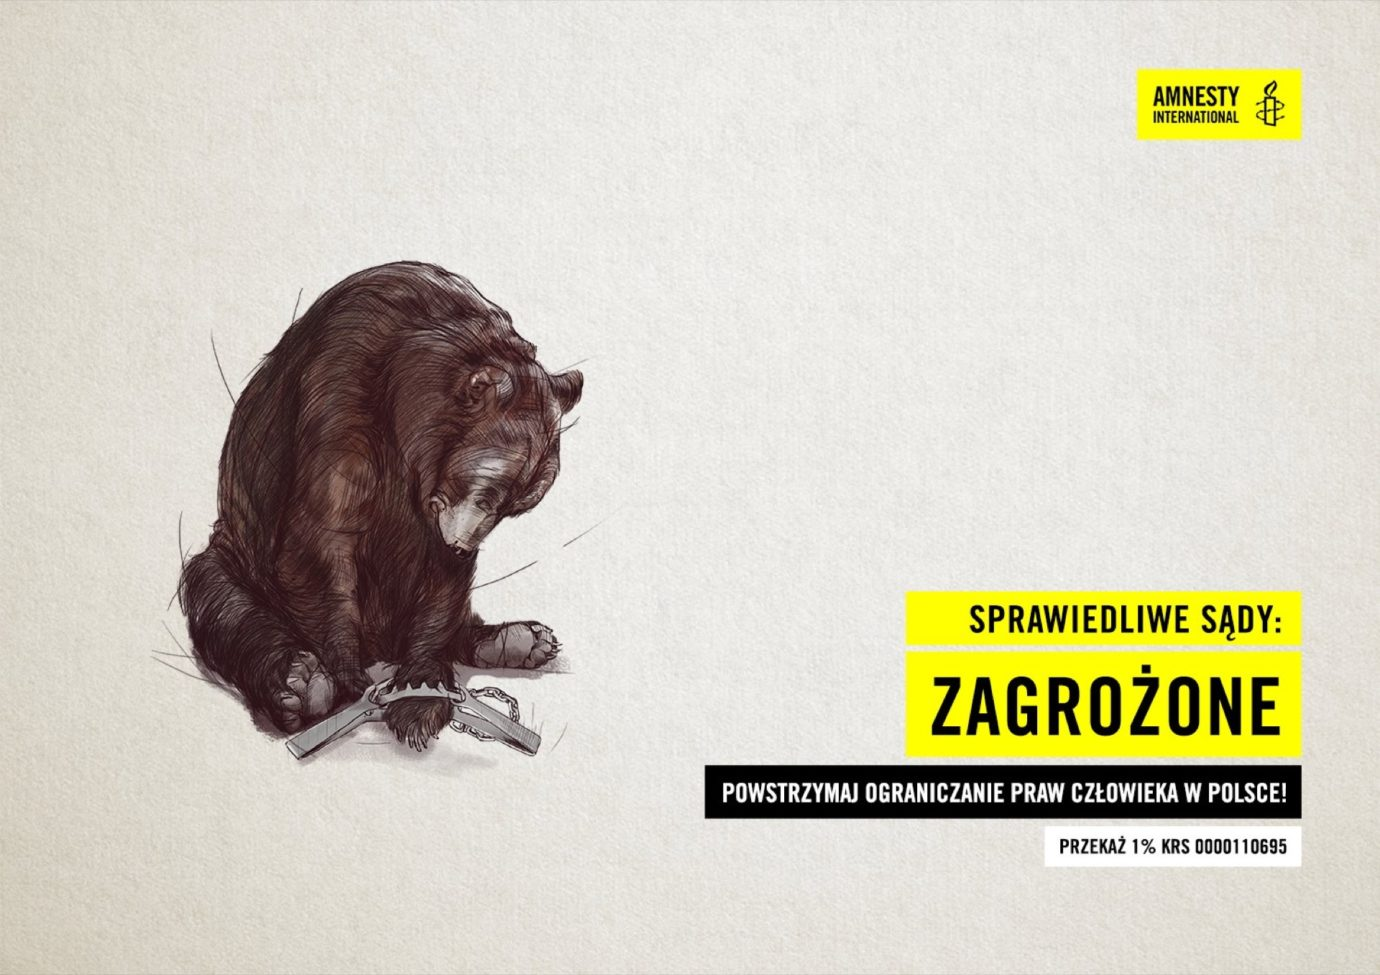 Client: Amnesty International Polska / Agency: TWIN. digital collective